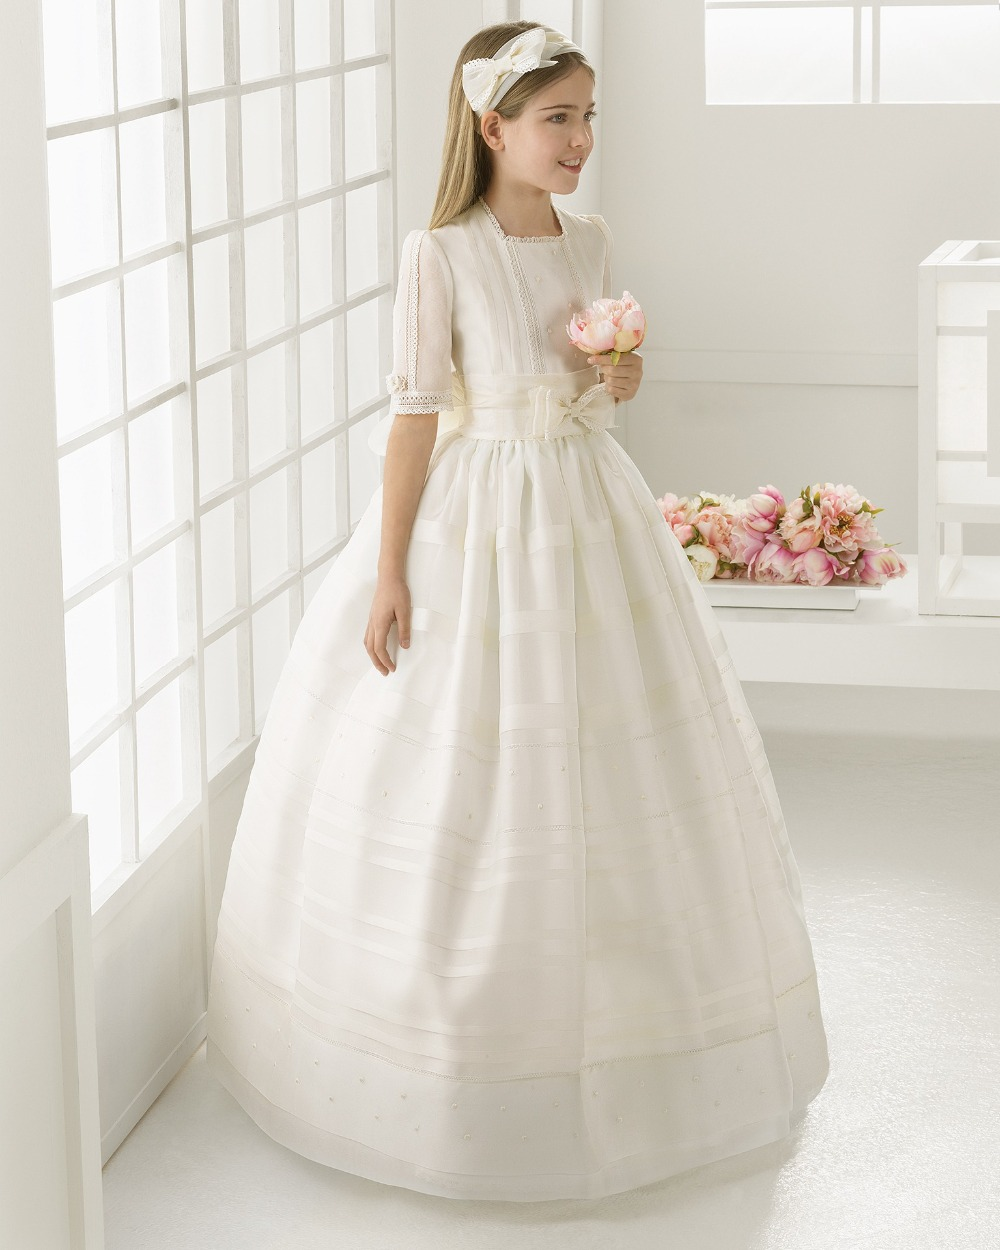 Cheap flower girl dresses for weddings mother of the bride dresses cheap flower girl dresses for weddings 115 izmirmasajfo Images